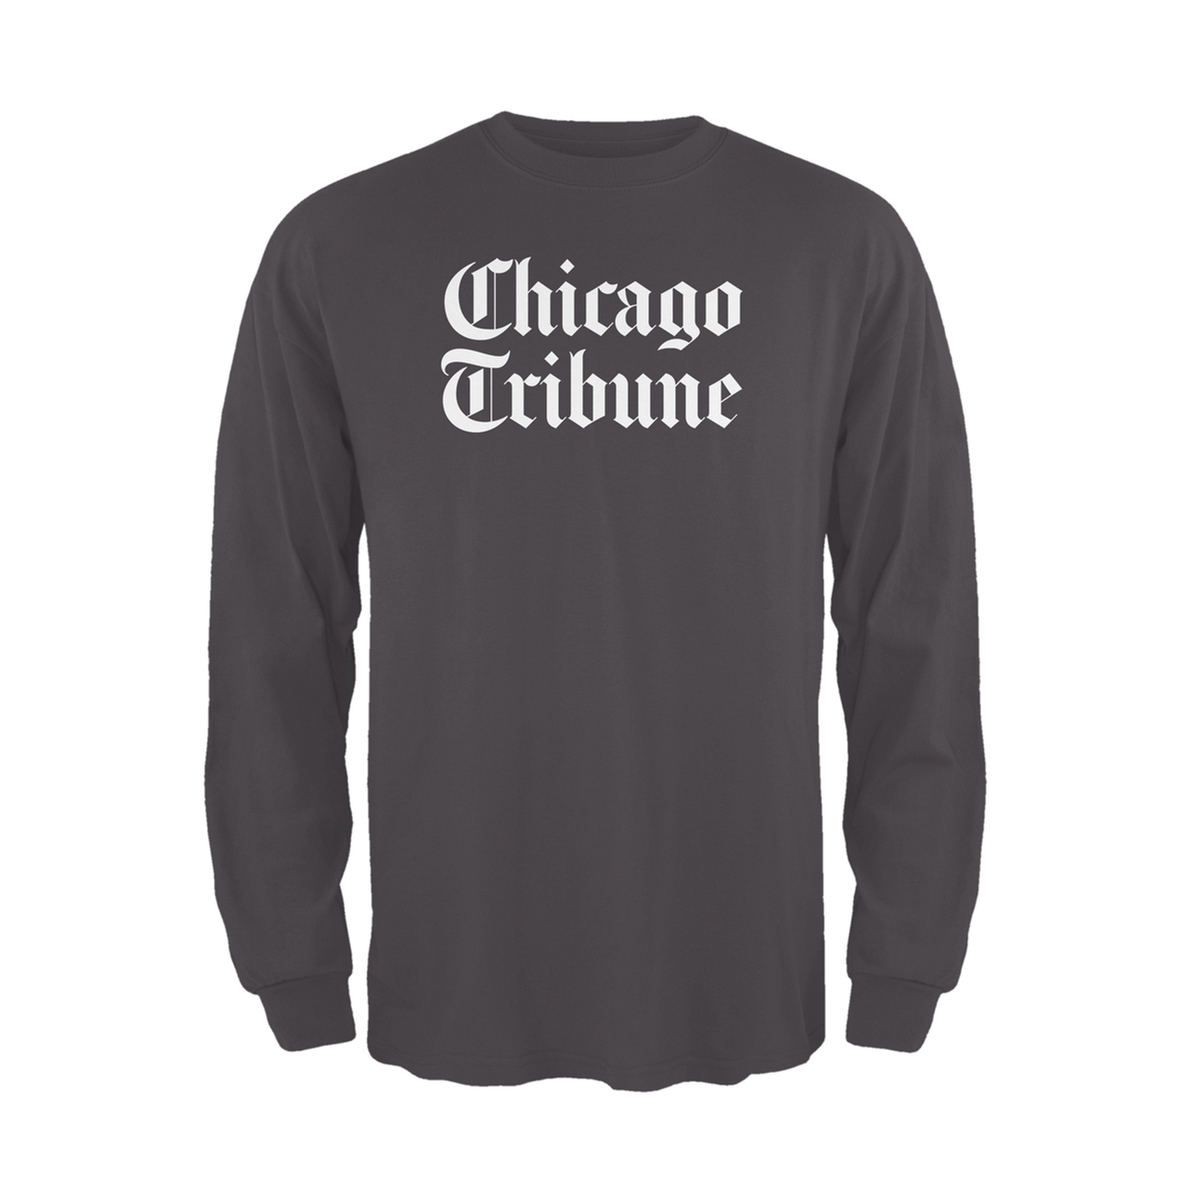 Chicago Tribune Stacked Logo Dark Grey Unisex Adult Long Sleeve T-Shirt